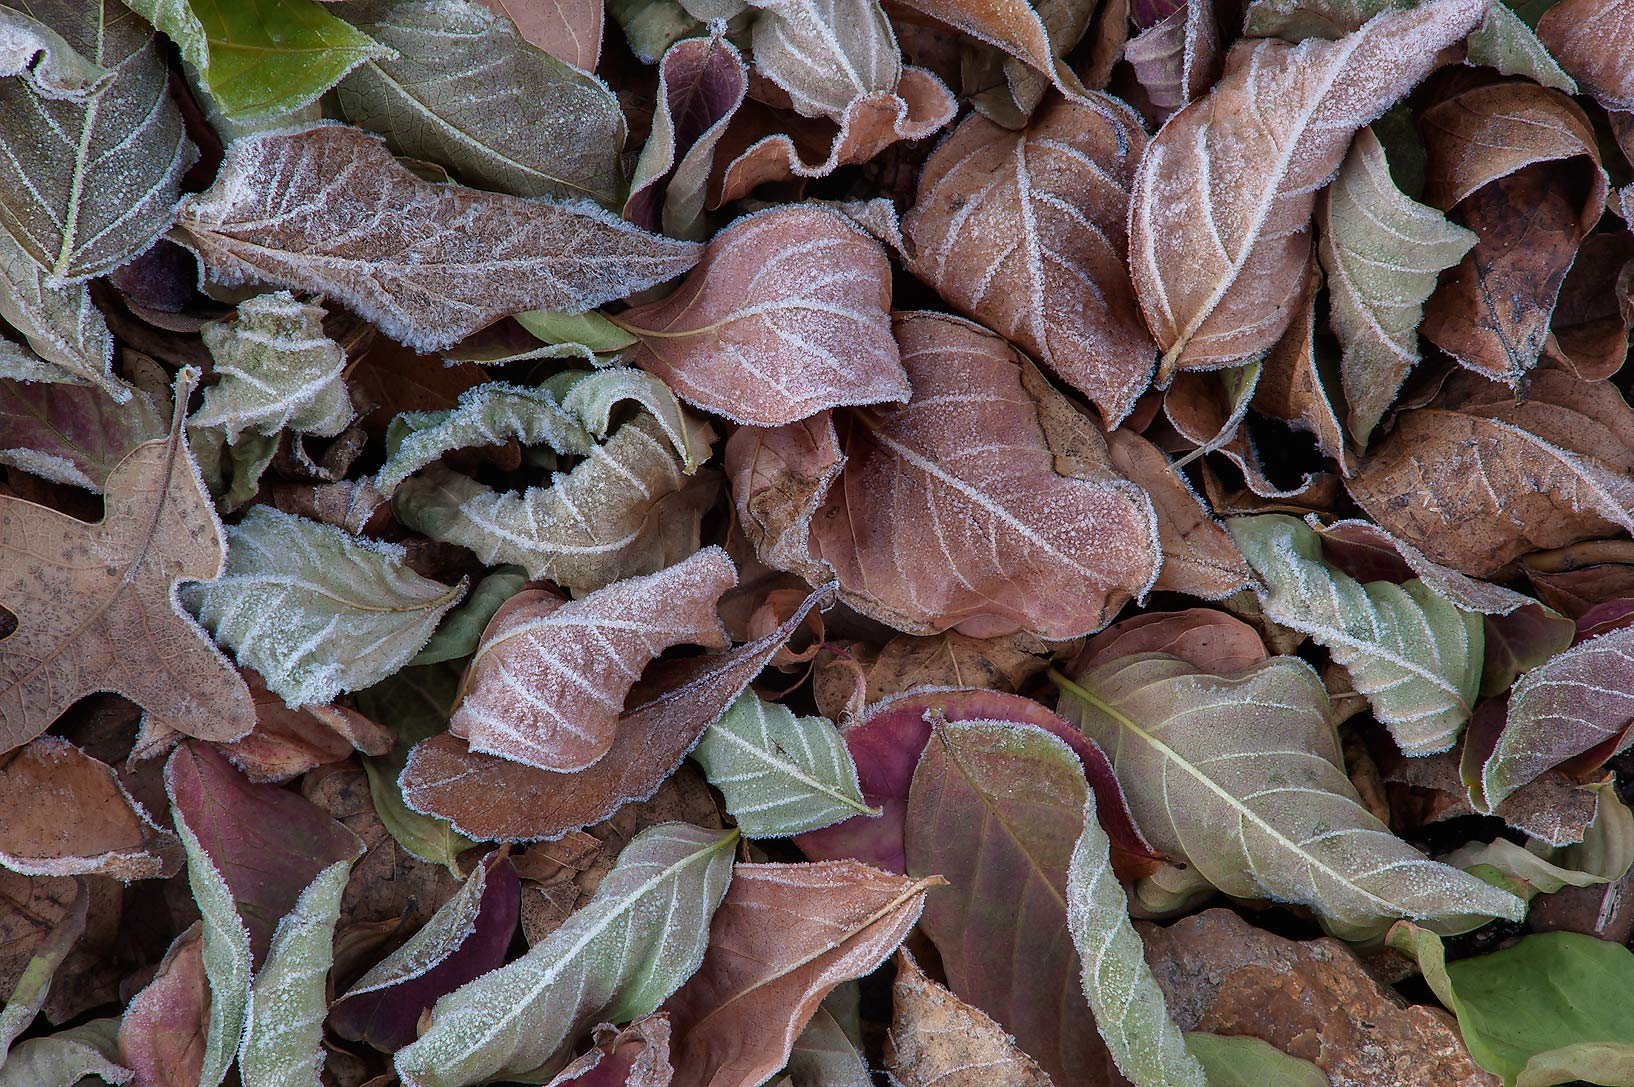 Dry fallen leaves in freeze in TAMU Horticultural...M University. College Station, Texas